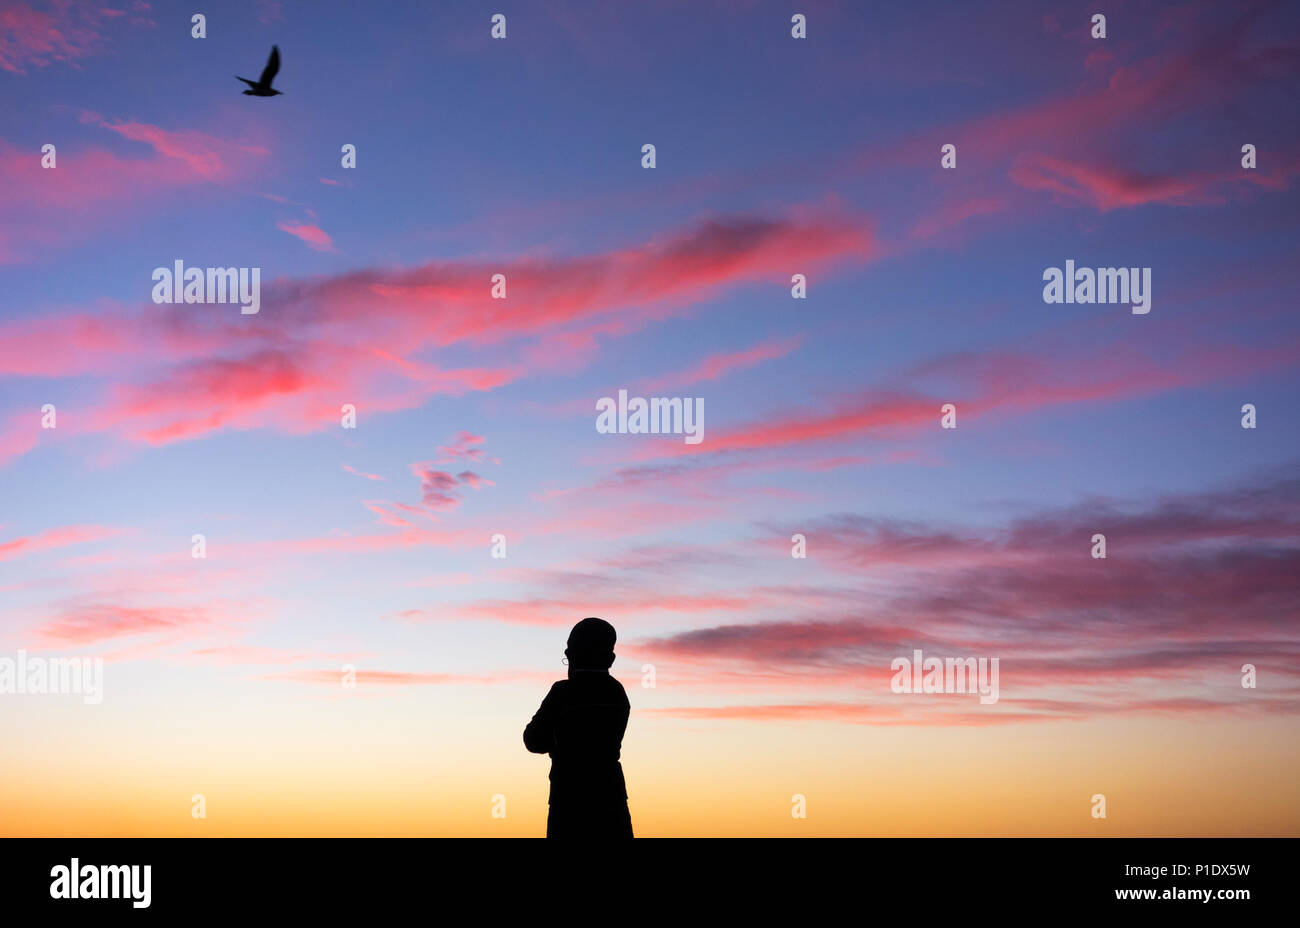 Rear view of woman silhouetted against colourful sunset as bird flies overhead: mental health, female depression, positive thinking... concept image - Stock Image